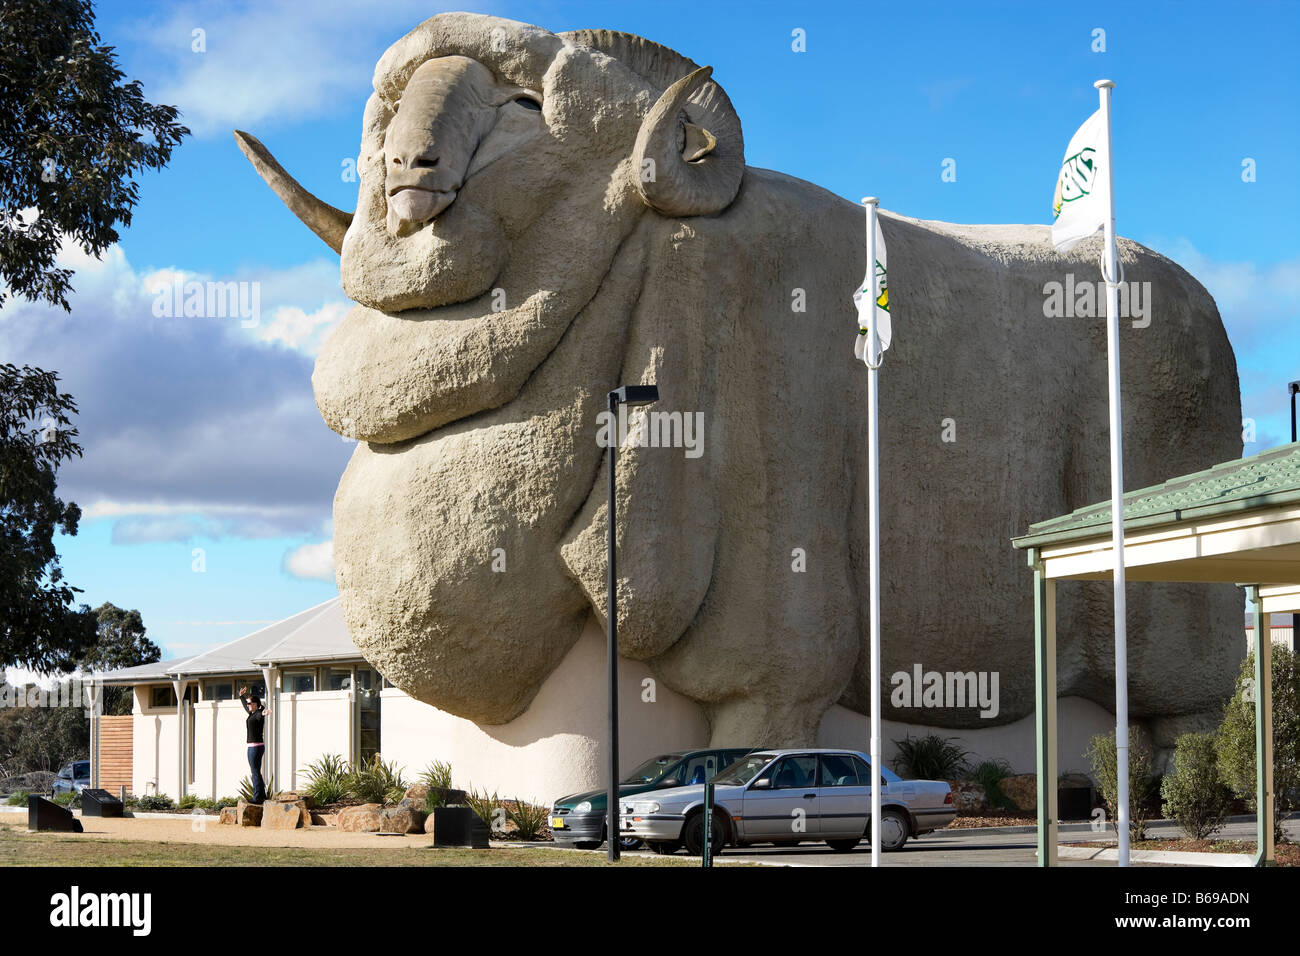 The Big Merino in Goulburn Australia. The worlds biggest Merino statue at 15.2 meters, 97t. - Stock Image